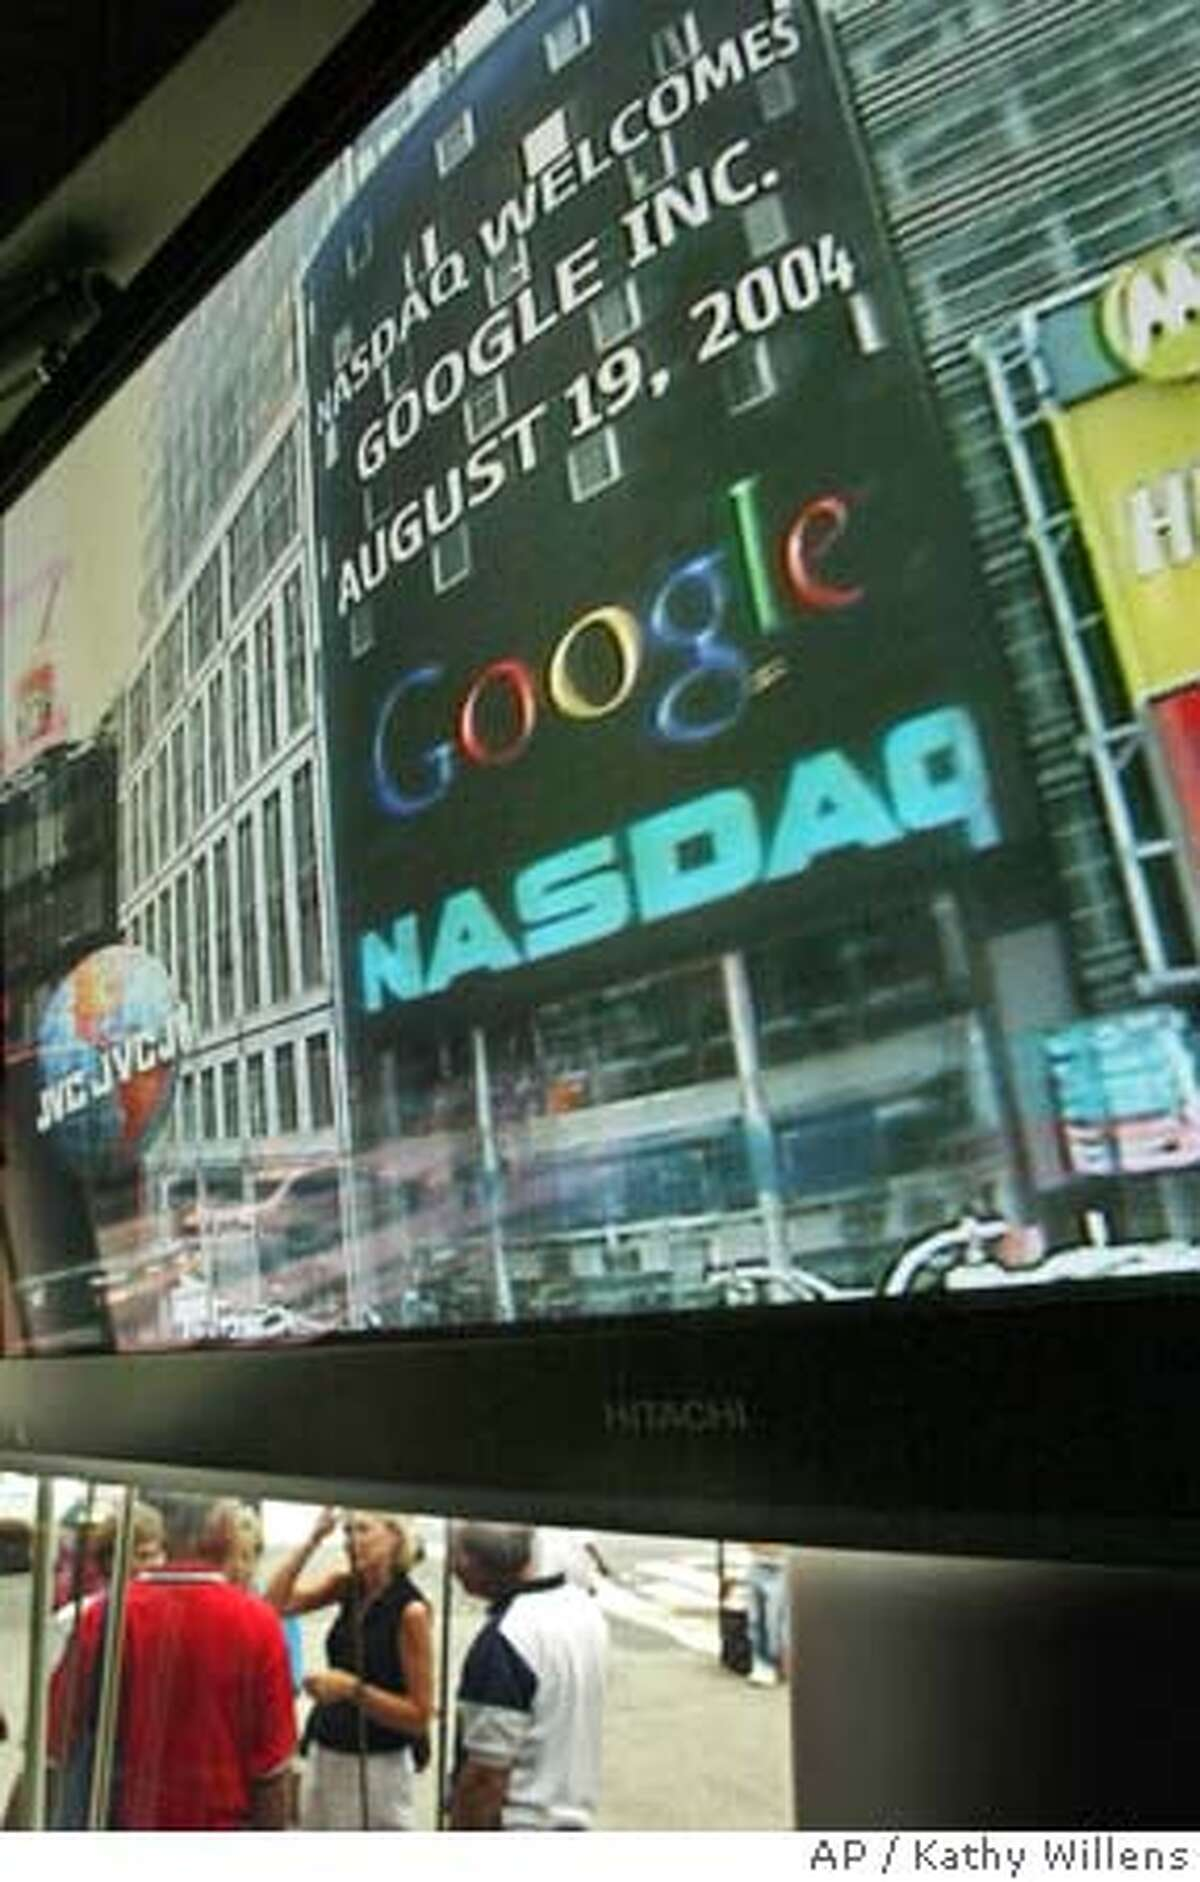 A sign welcoming Google to the Nasdaq market is shown on a video screen inside the Times Square headquarters of the electronic market shortly after shares of the company began trading at midday, Thursday, Aug. 19, 2004, in New York. (AP Photo/Kathy Willens)